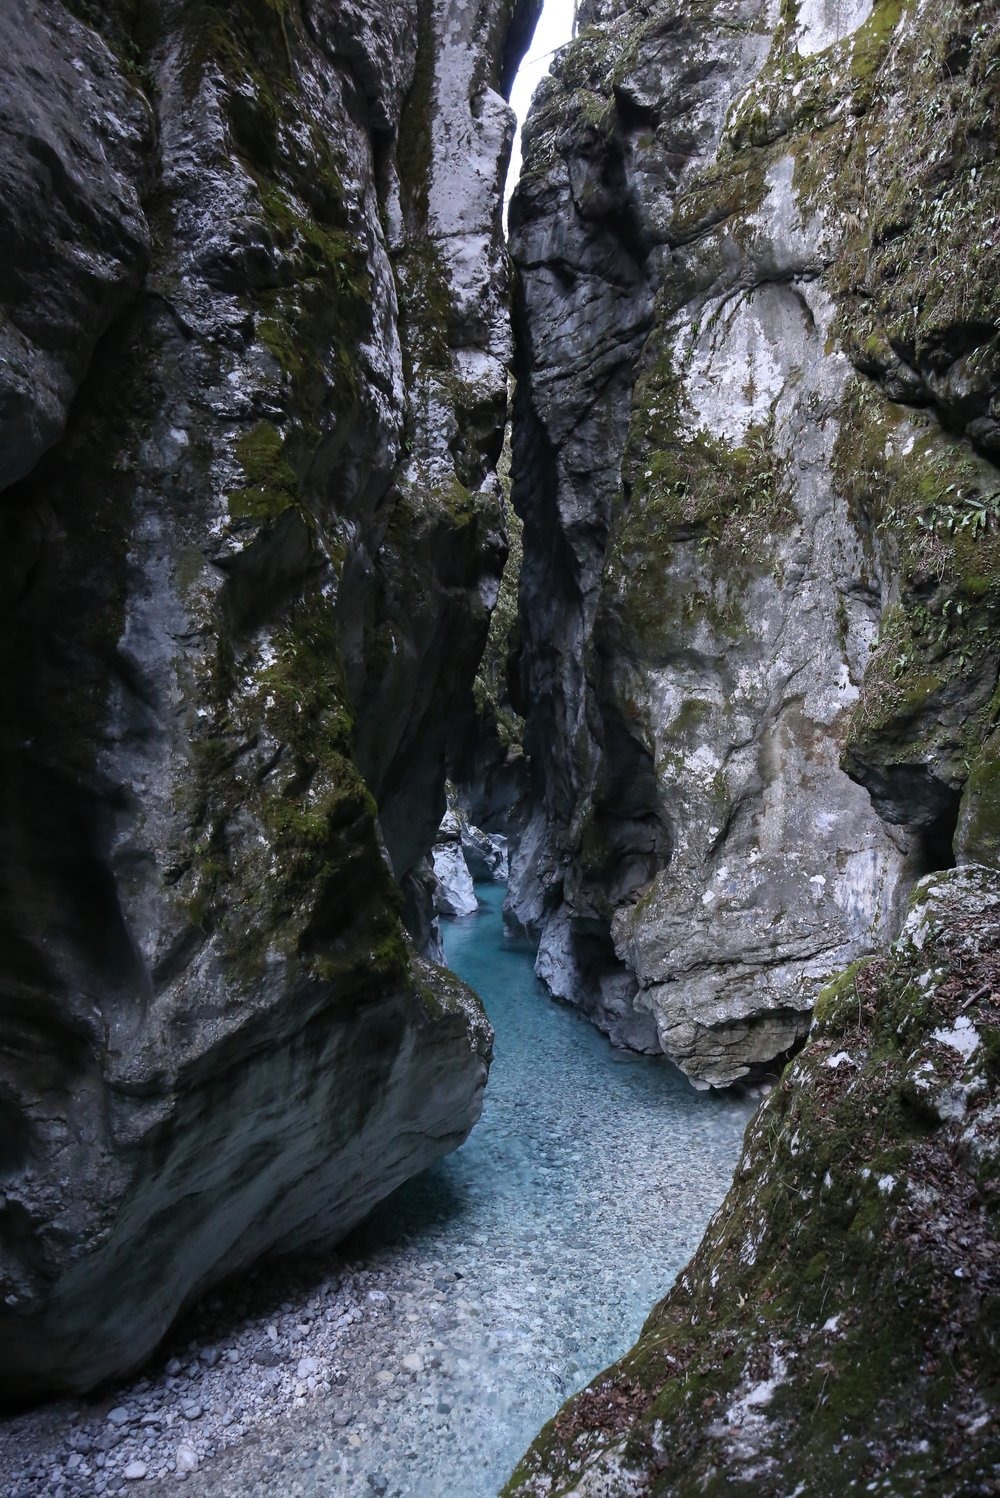 The Vintgar Gorge river is still blue in the winter.